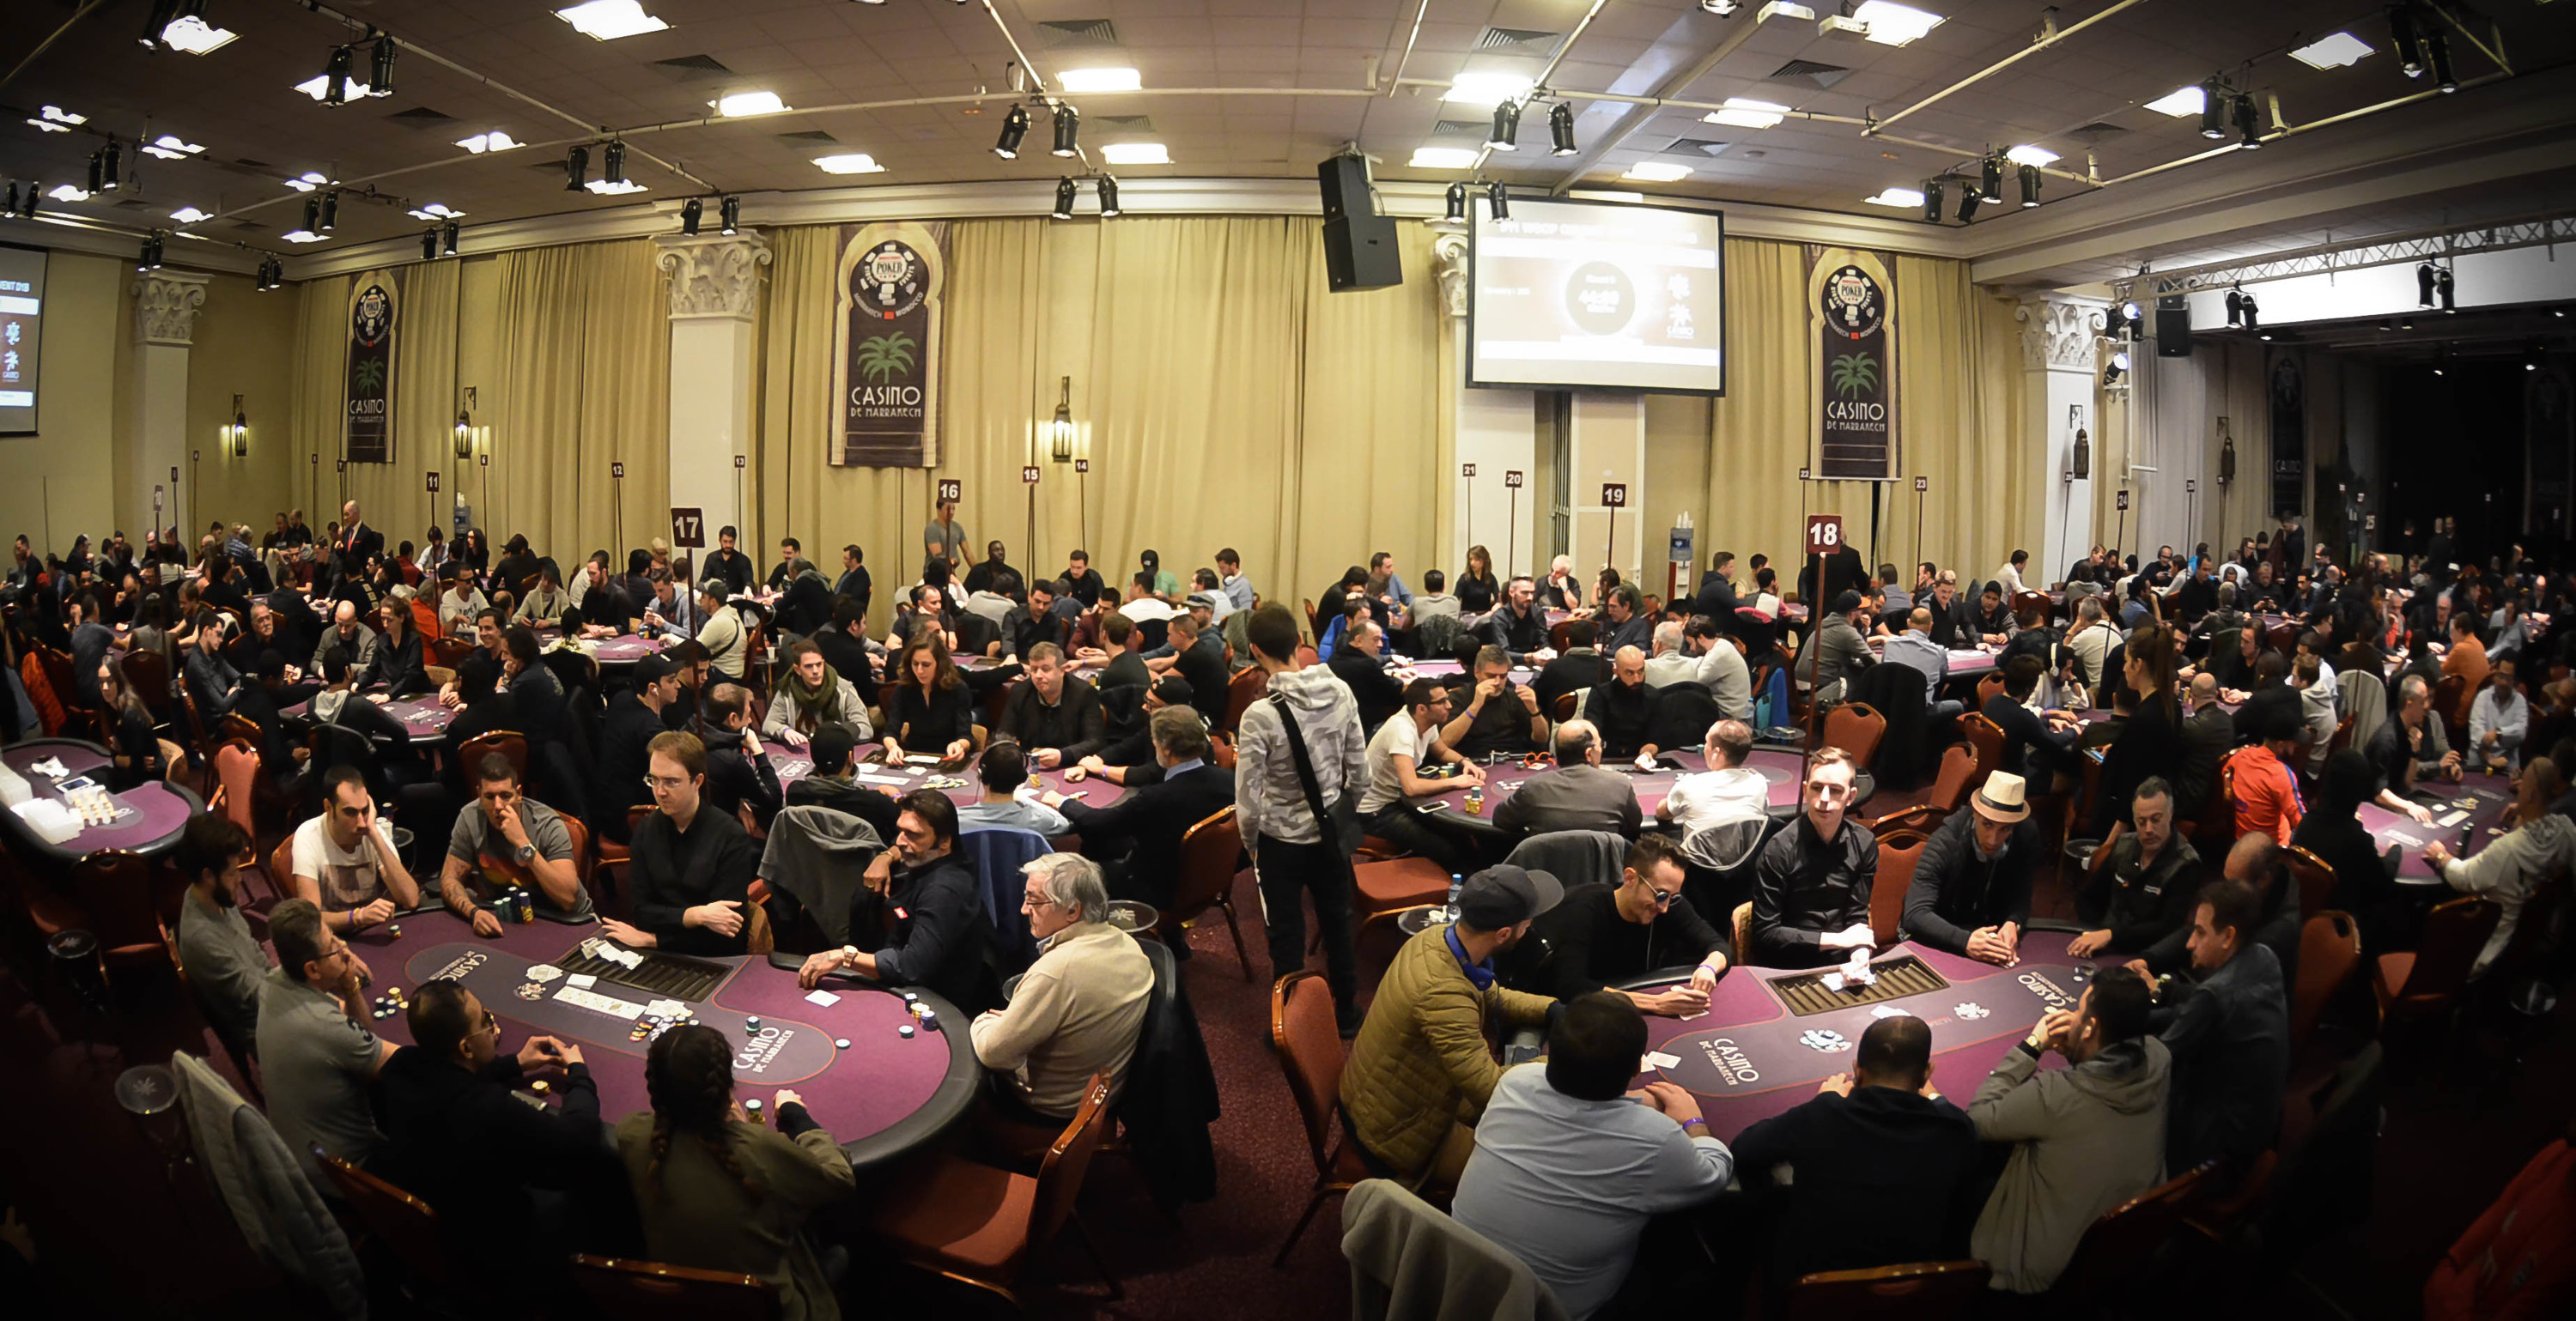 Alexandre Viard Claims WSOPC Lead in Record Day 1b in Marrakech 101